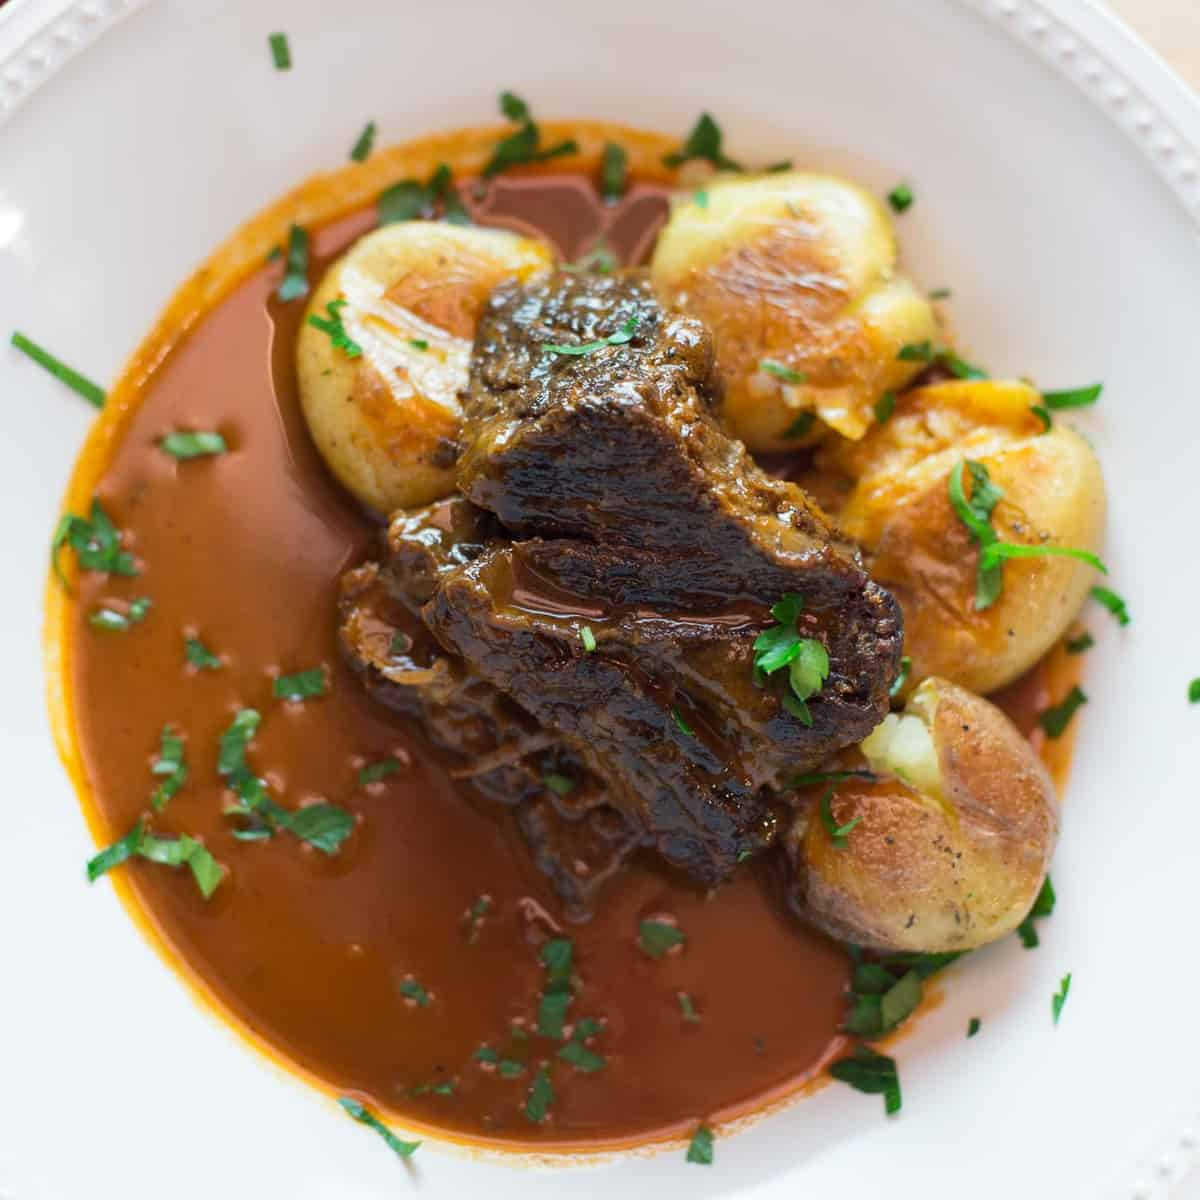 braised beef short ribs served with roasted potatoes